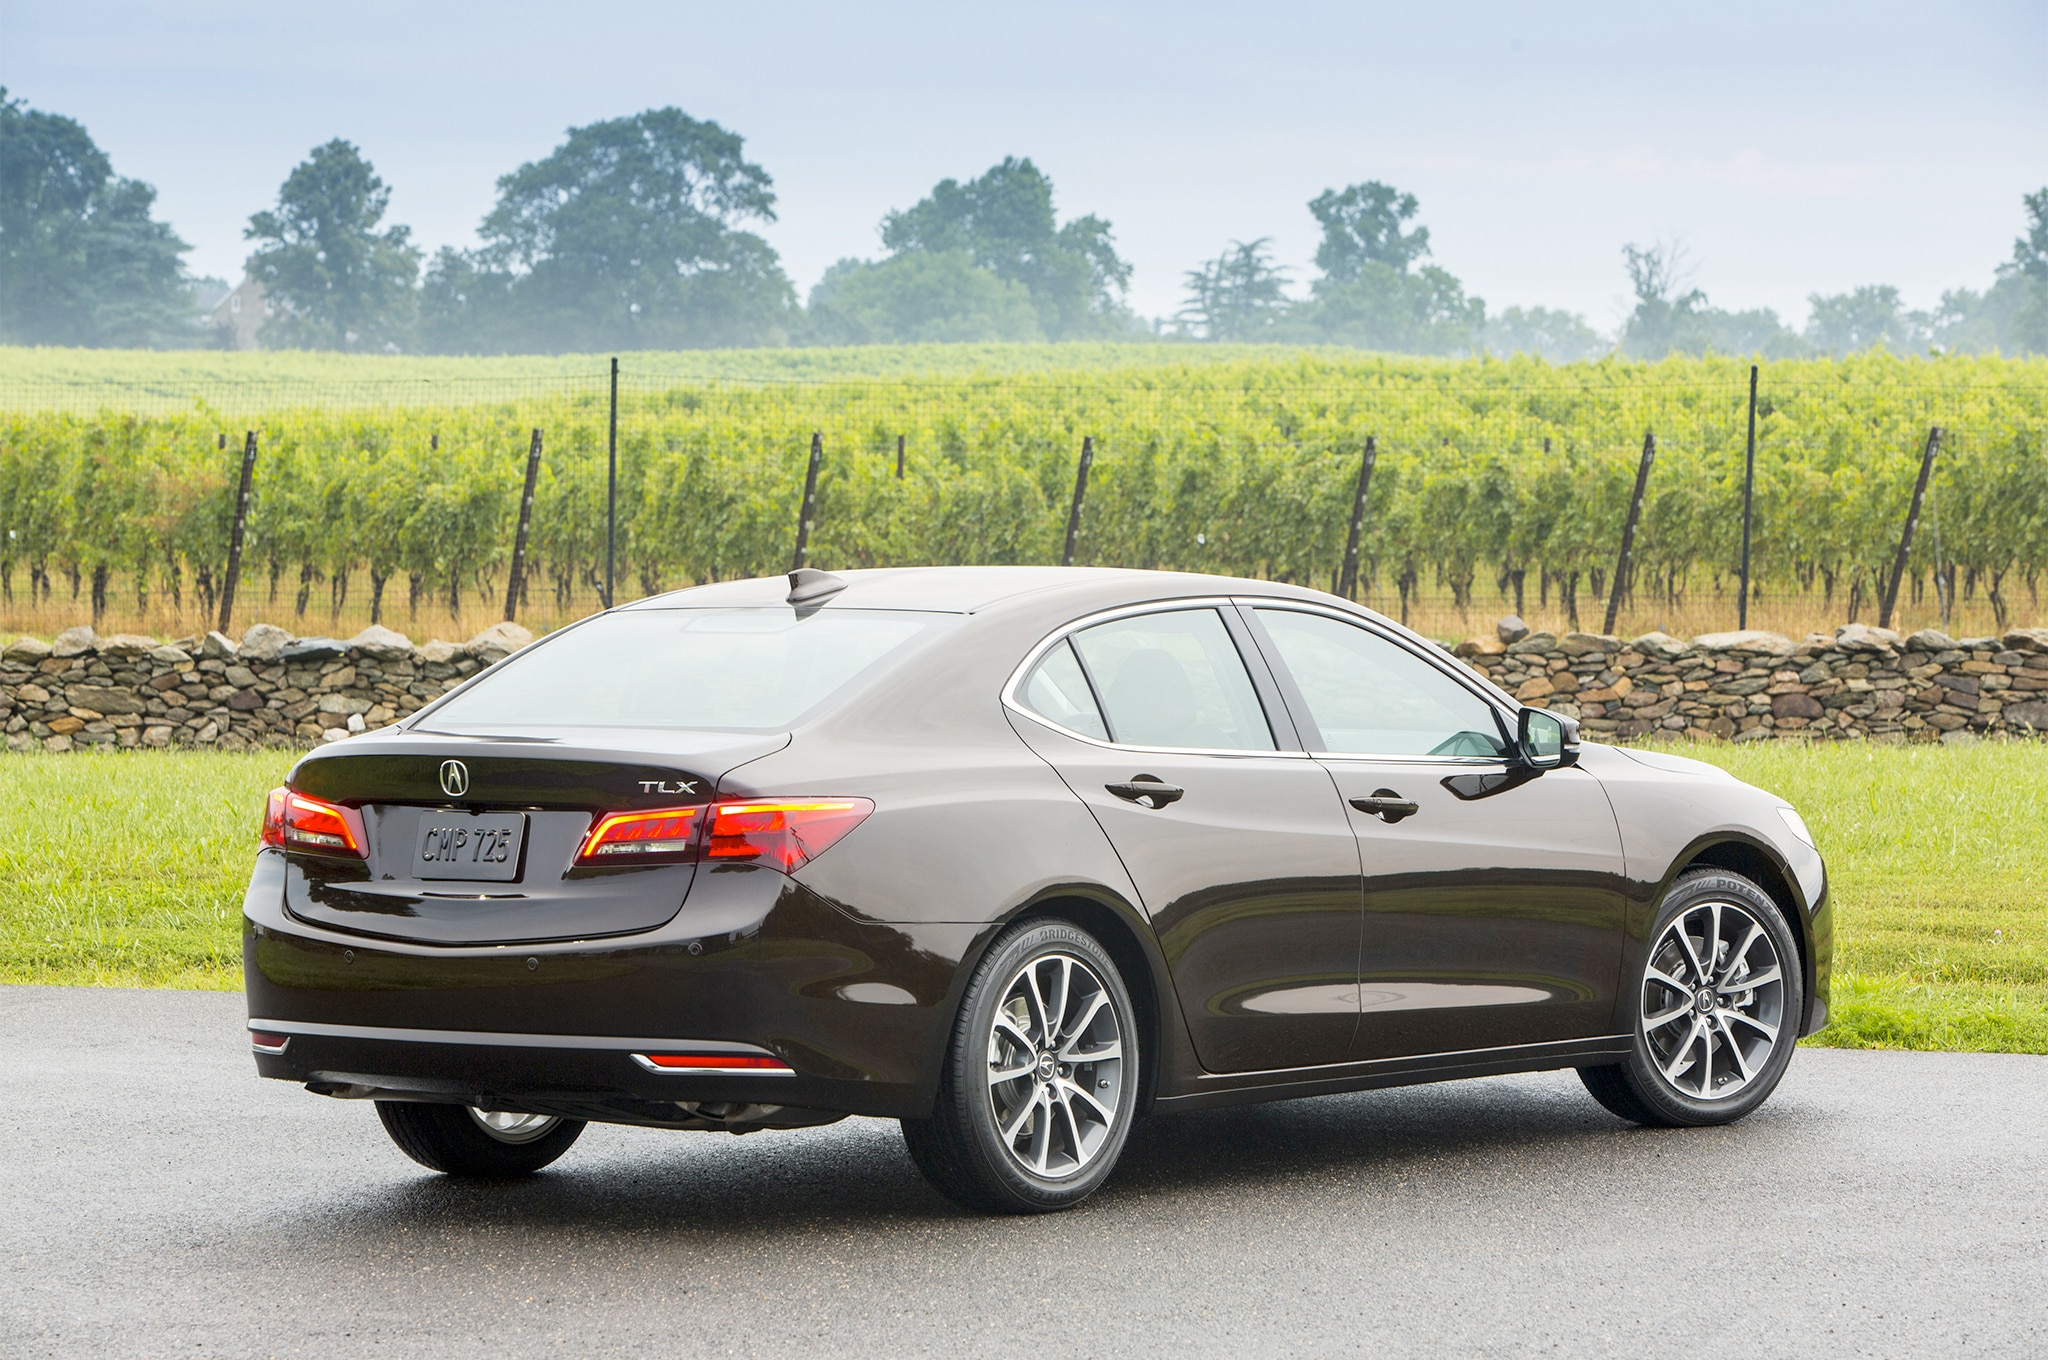 2017 Acura TLX 3.5 SH-AWD One Week Review | Automobile Magazine